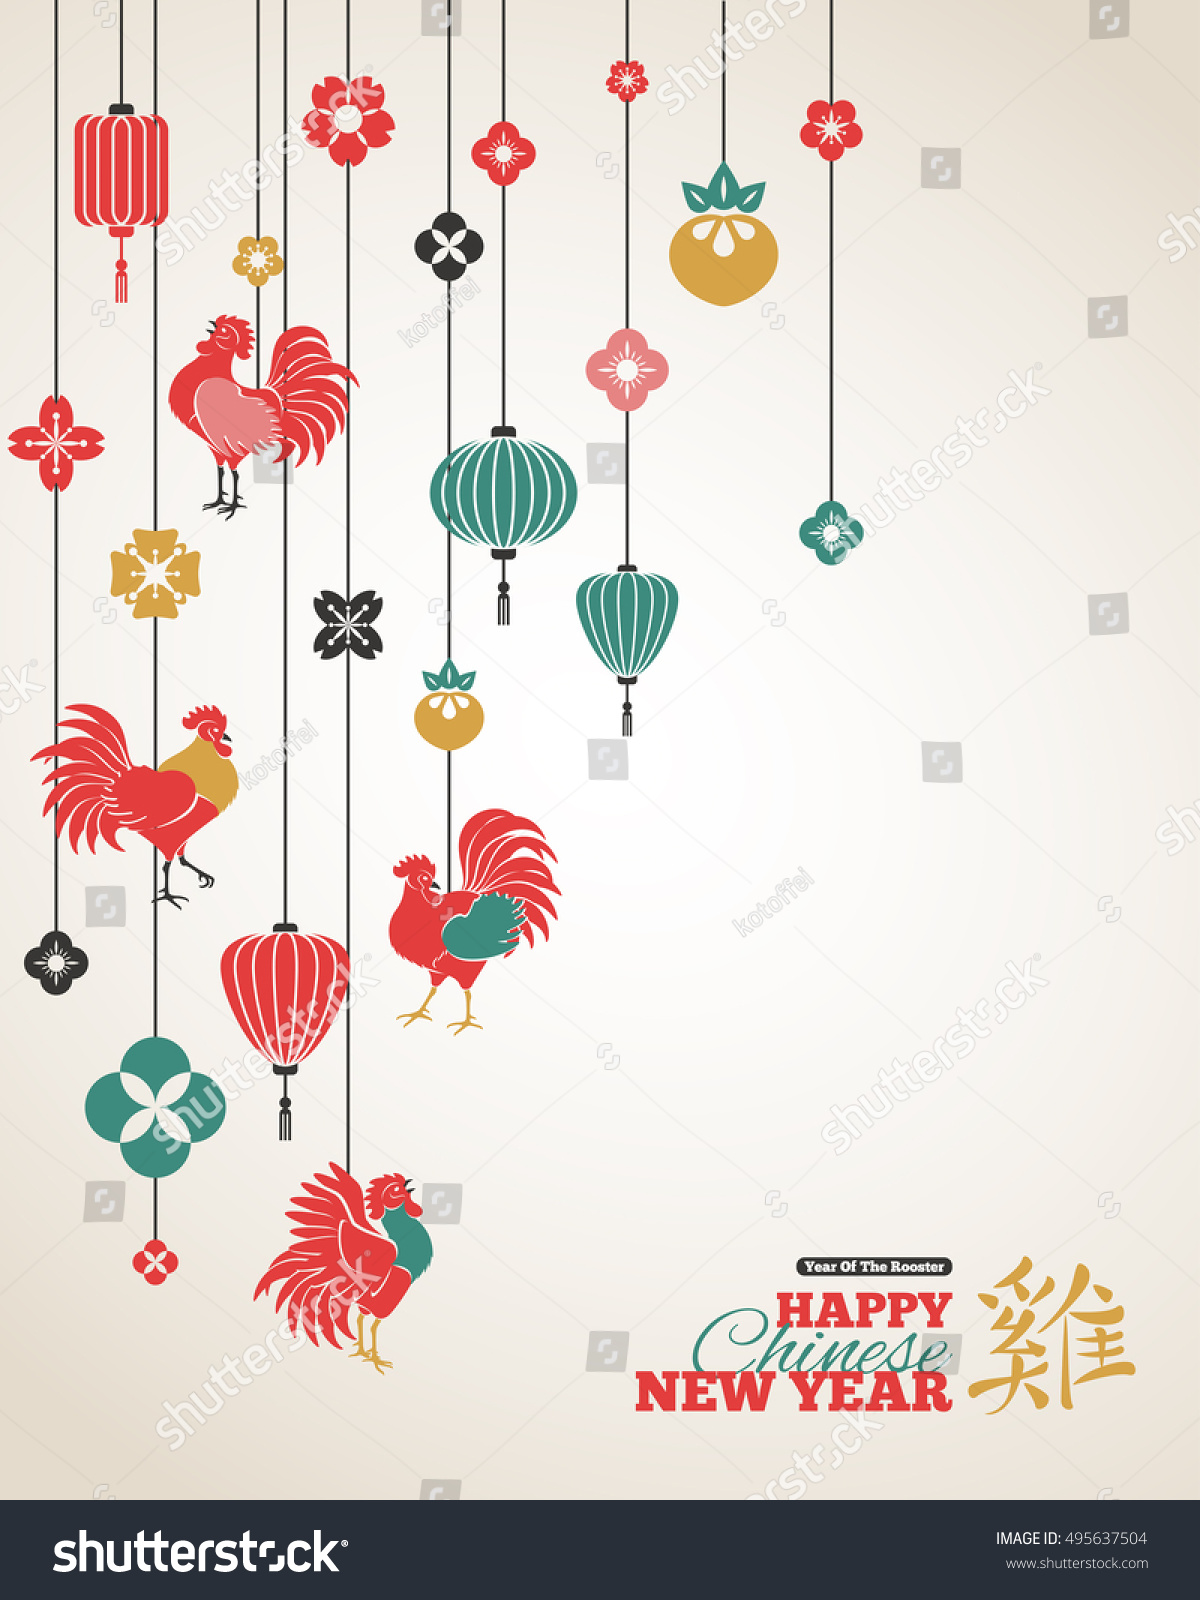 2017 Chinese New Year Greeting Card Stock Vector 495637504 ...